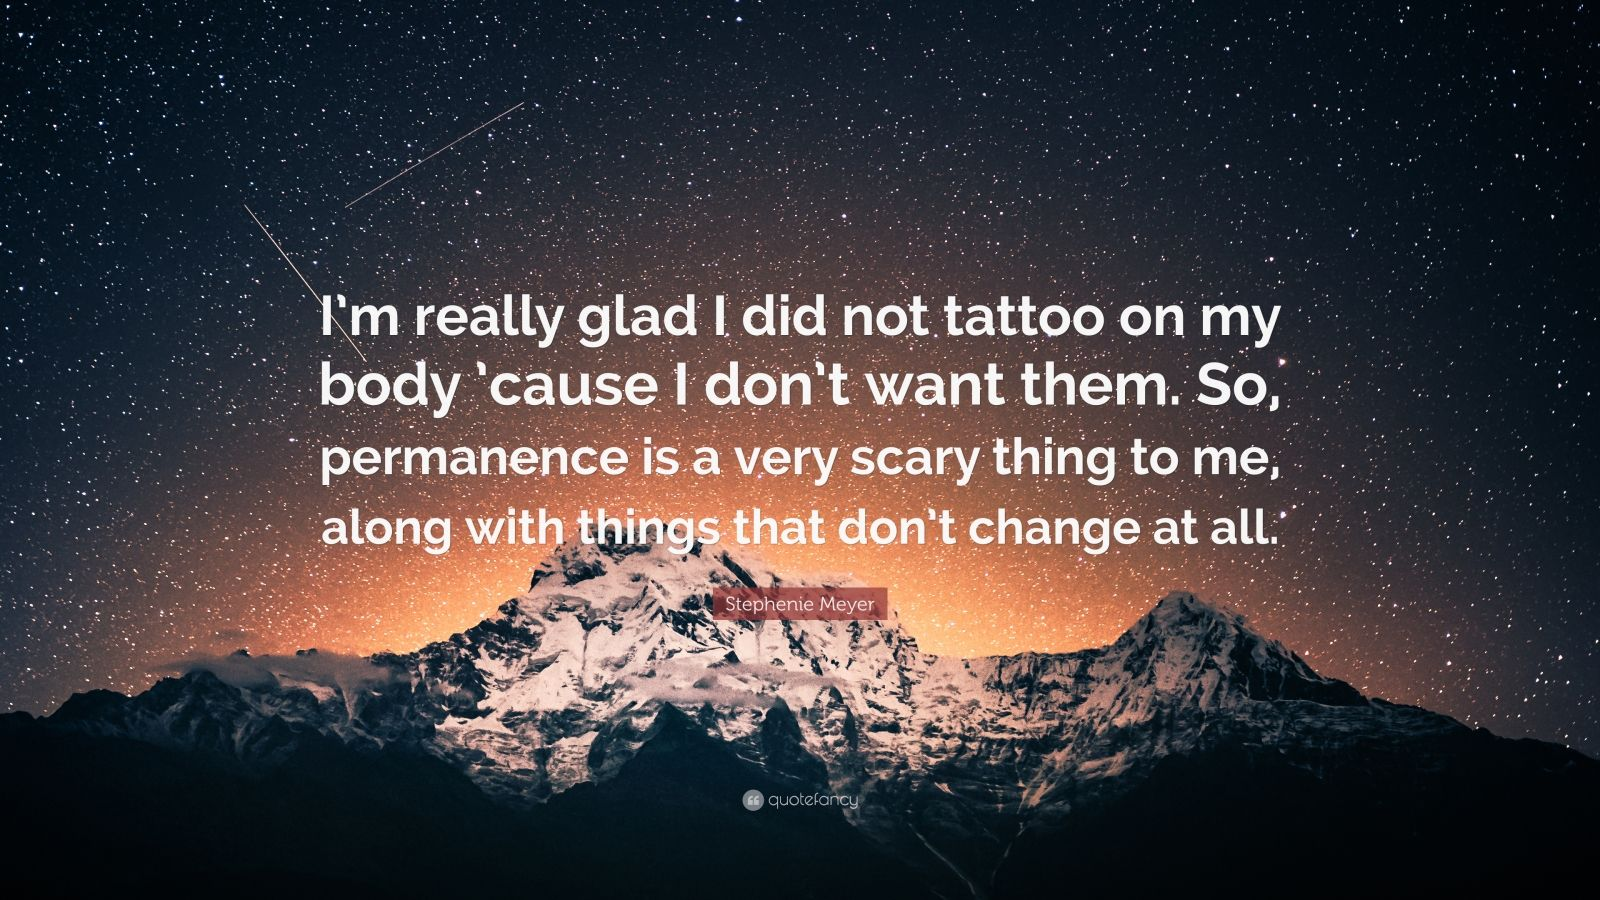 "Stephenie Meyer Quote: ""I'm really glad I did not tattoo on my body 'cause I don't want them. So, permanence is a very scary thing to me, along with things that don't change at all."""